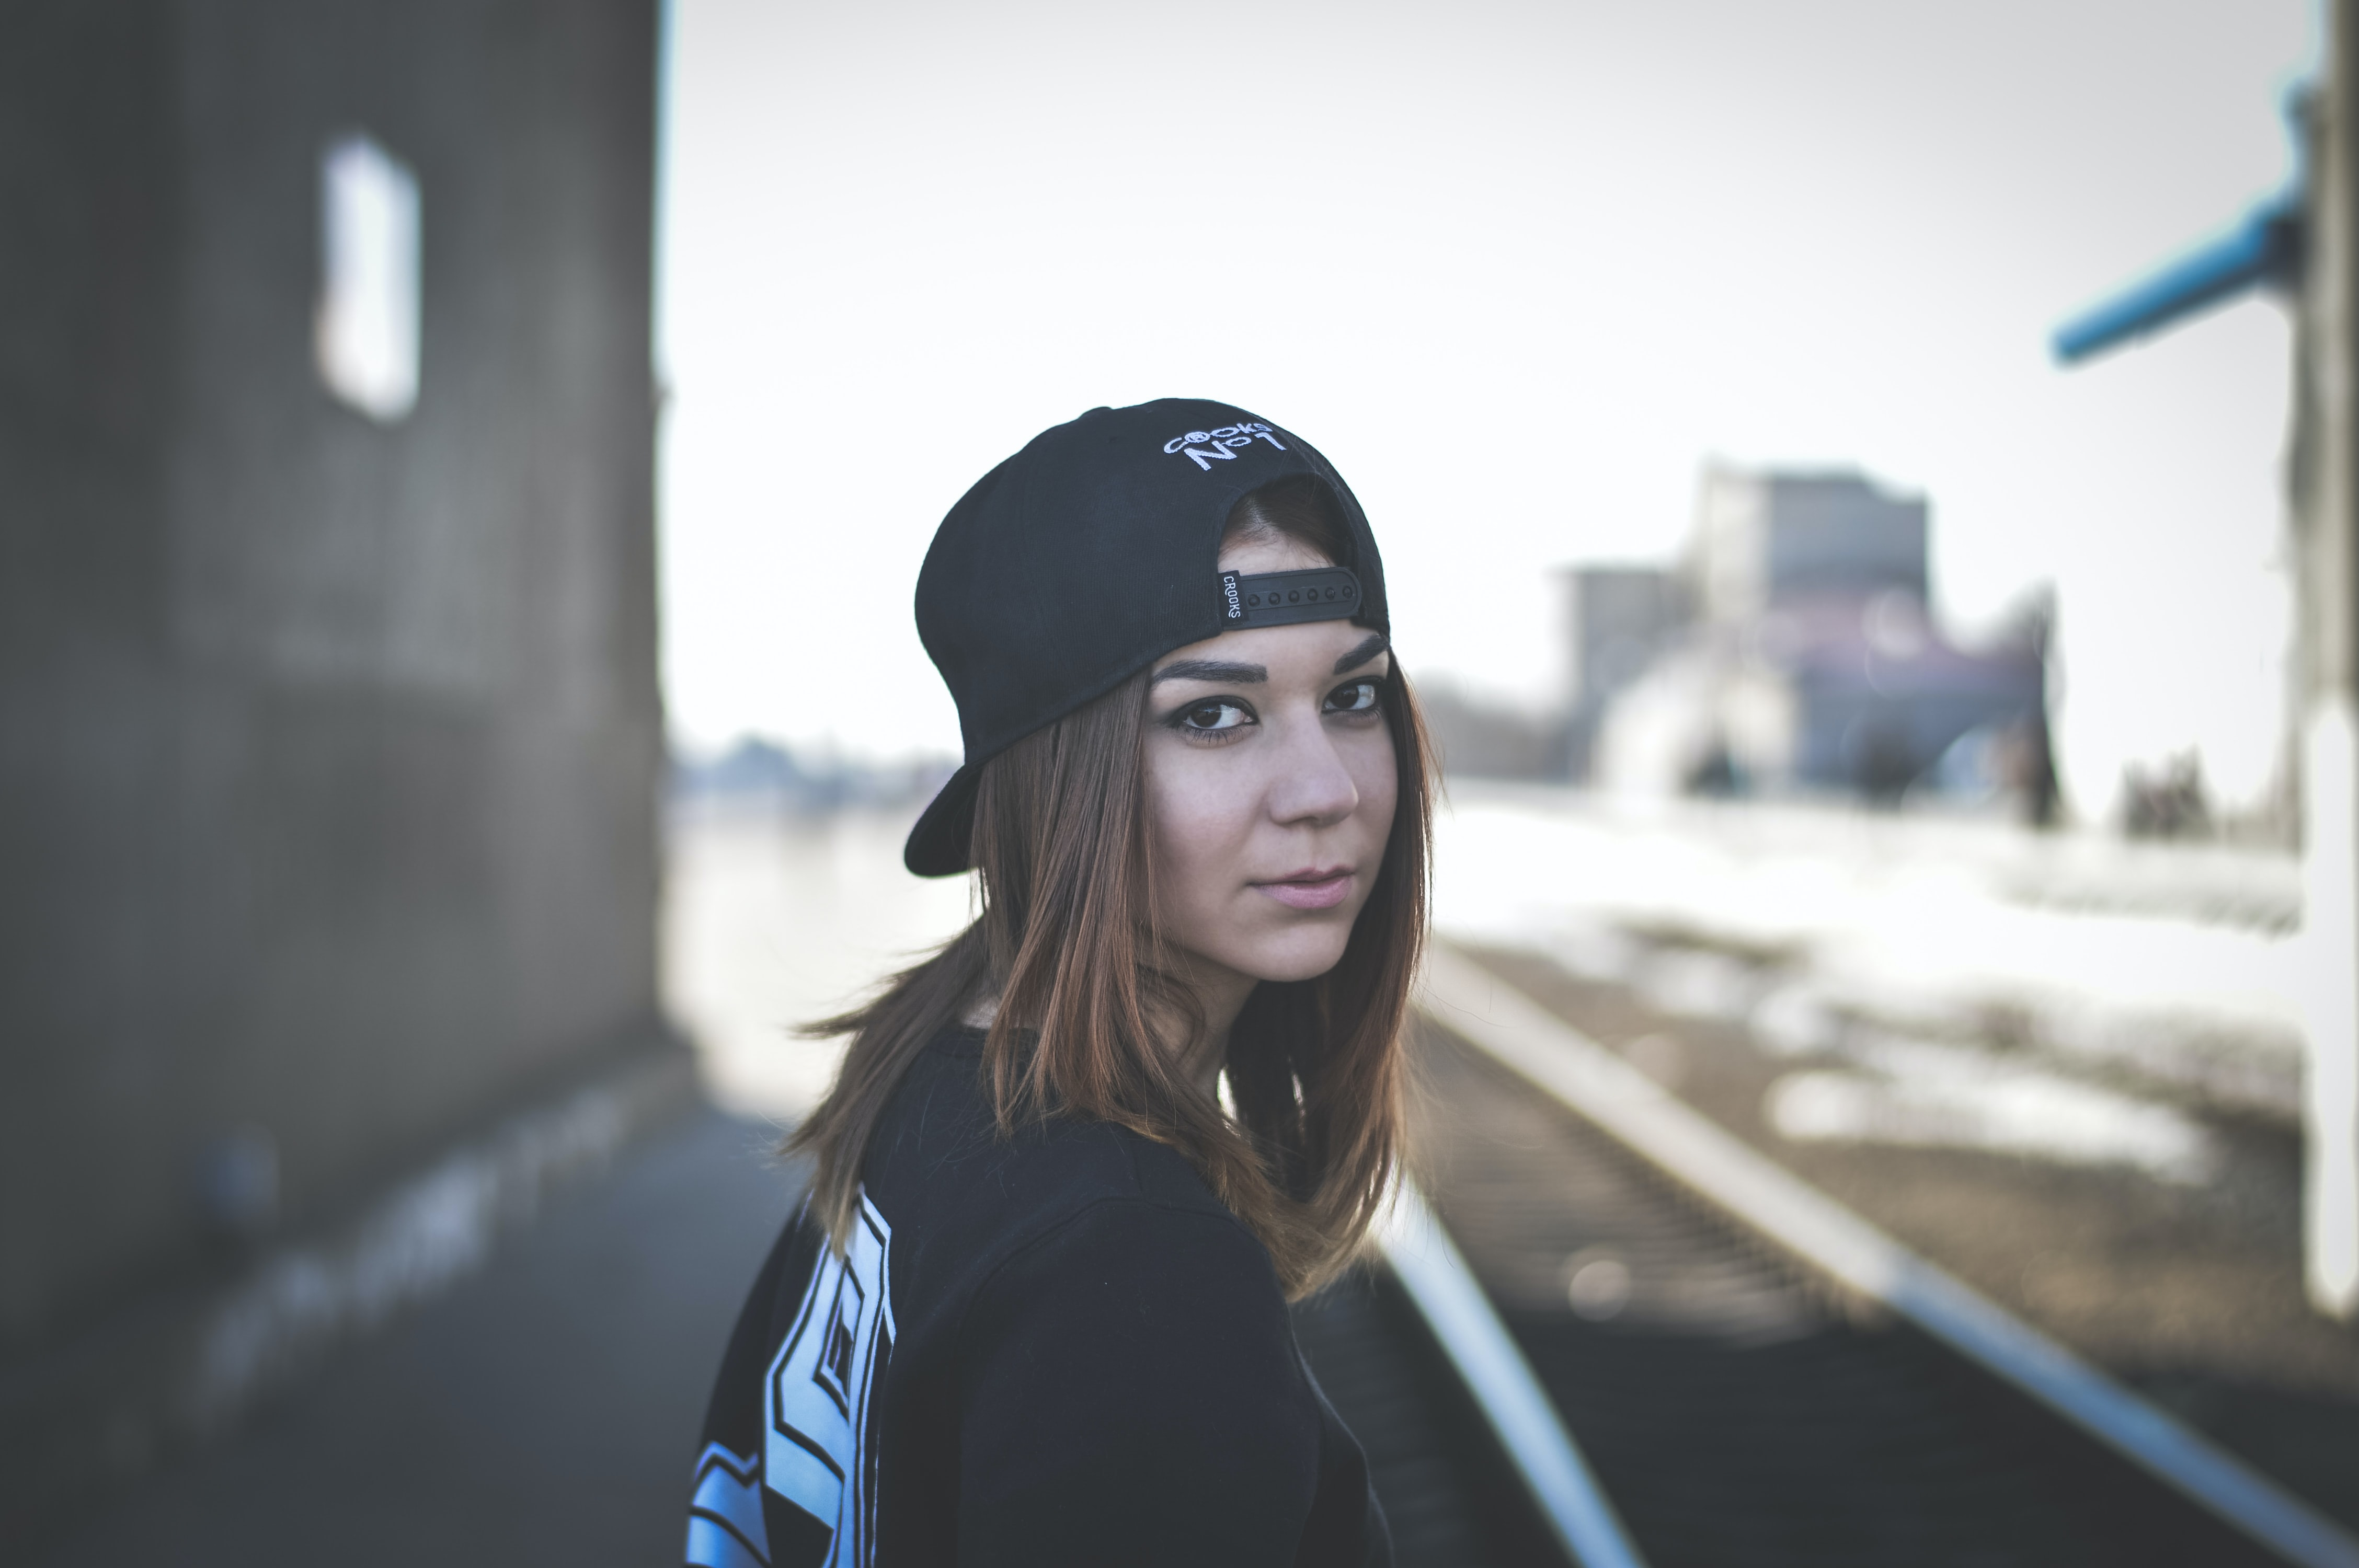 Woman in urban streetwear looks back at the camera seriously